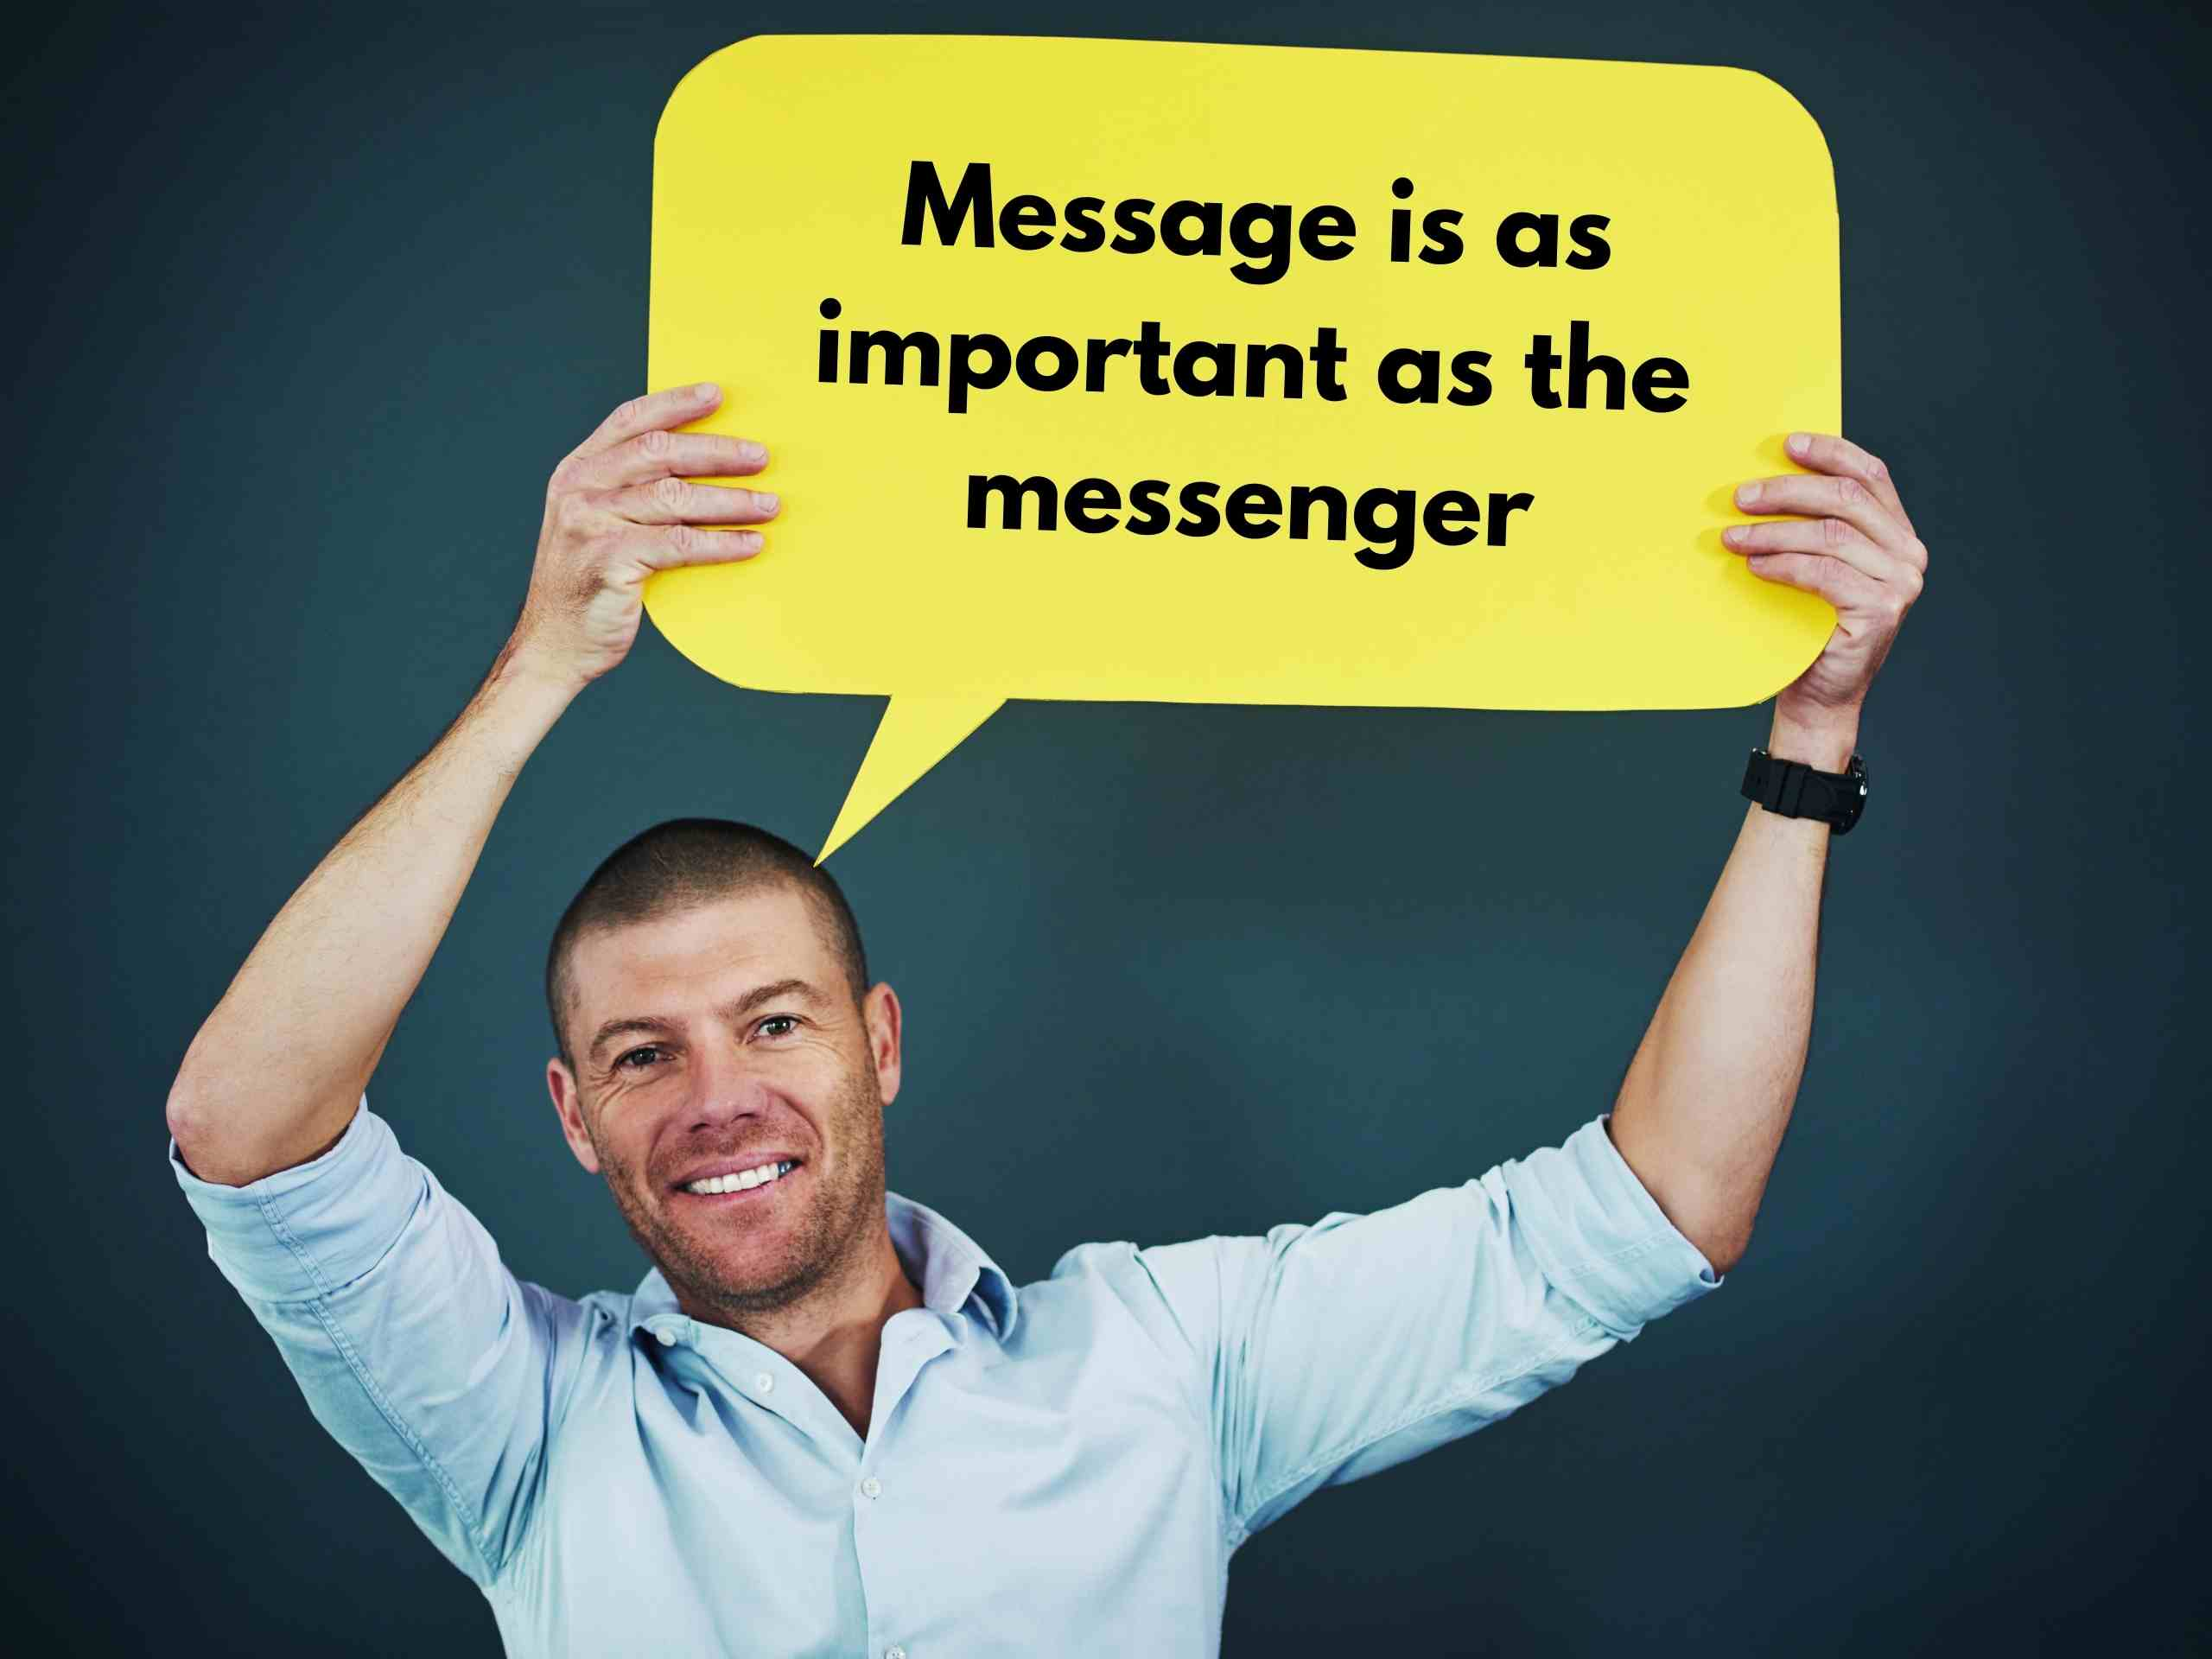 Message is as important as the messenger